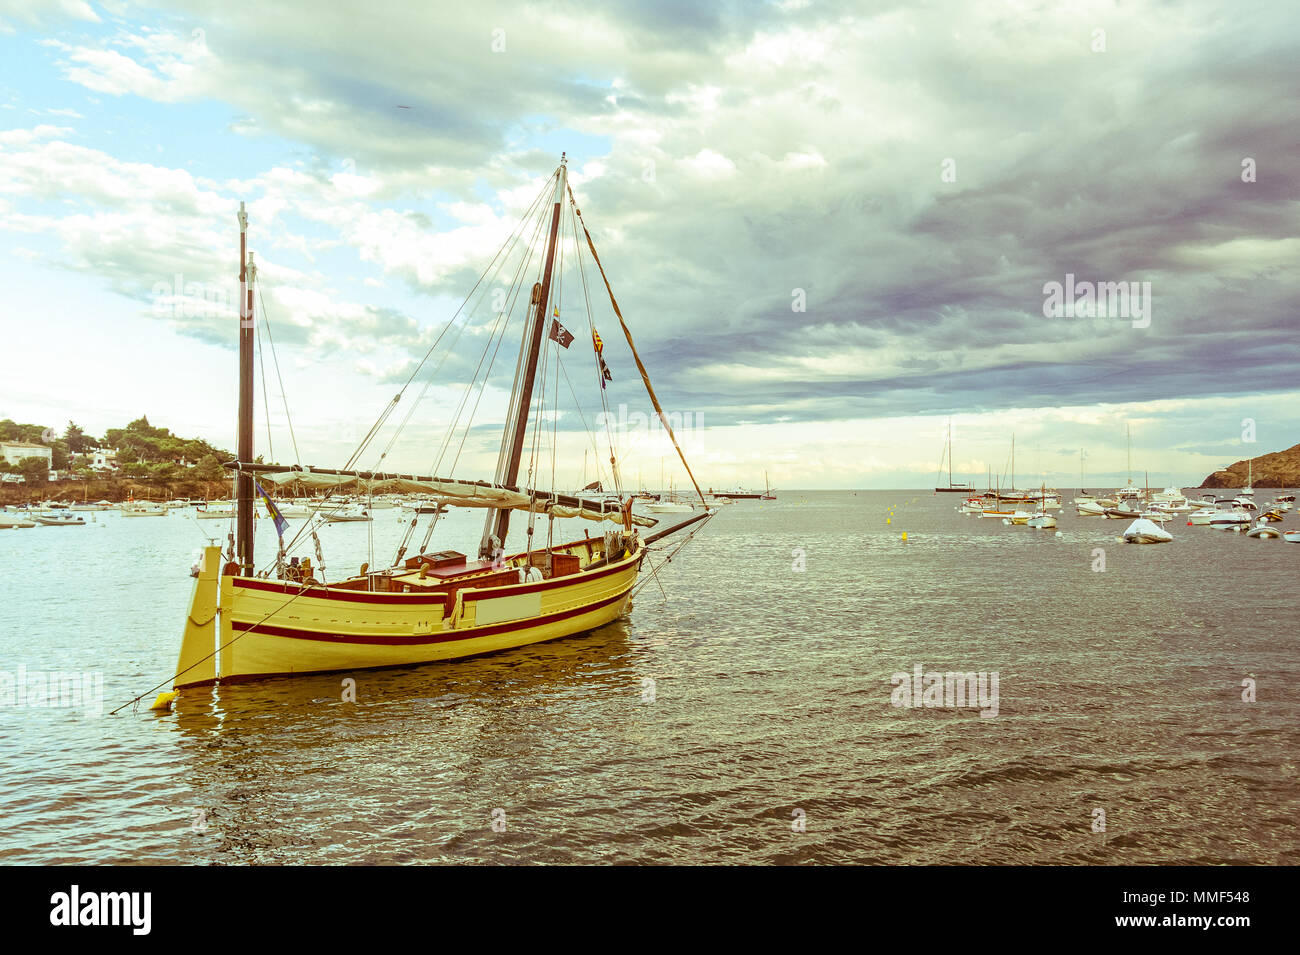 Tourist boat in the port of Cadaques, Costa Brava, province Girona, Catalonia, Spain. Image with vintage and yesteryear effect - Stock Image